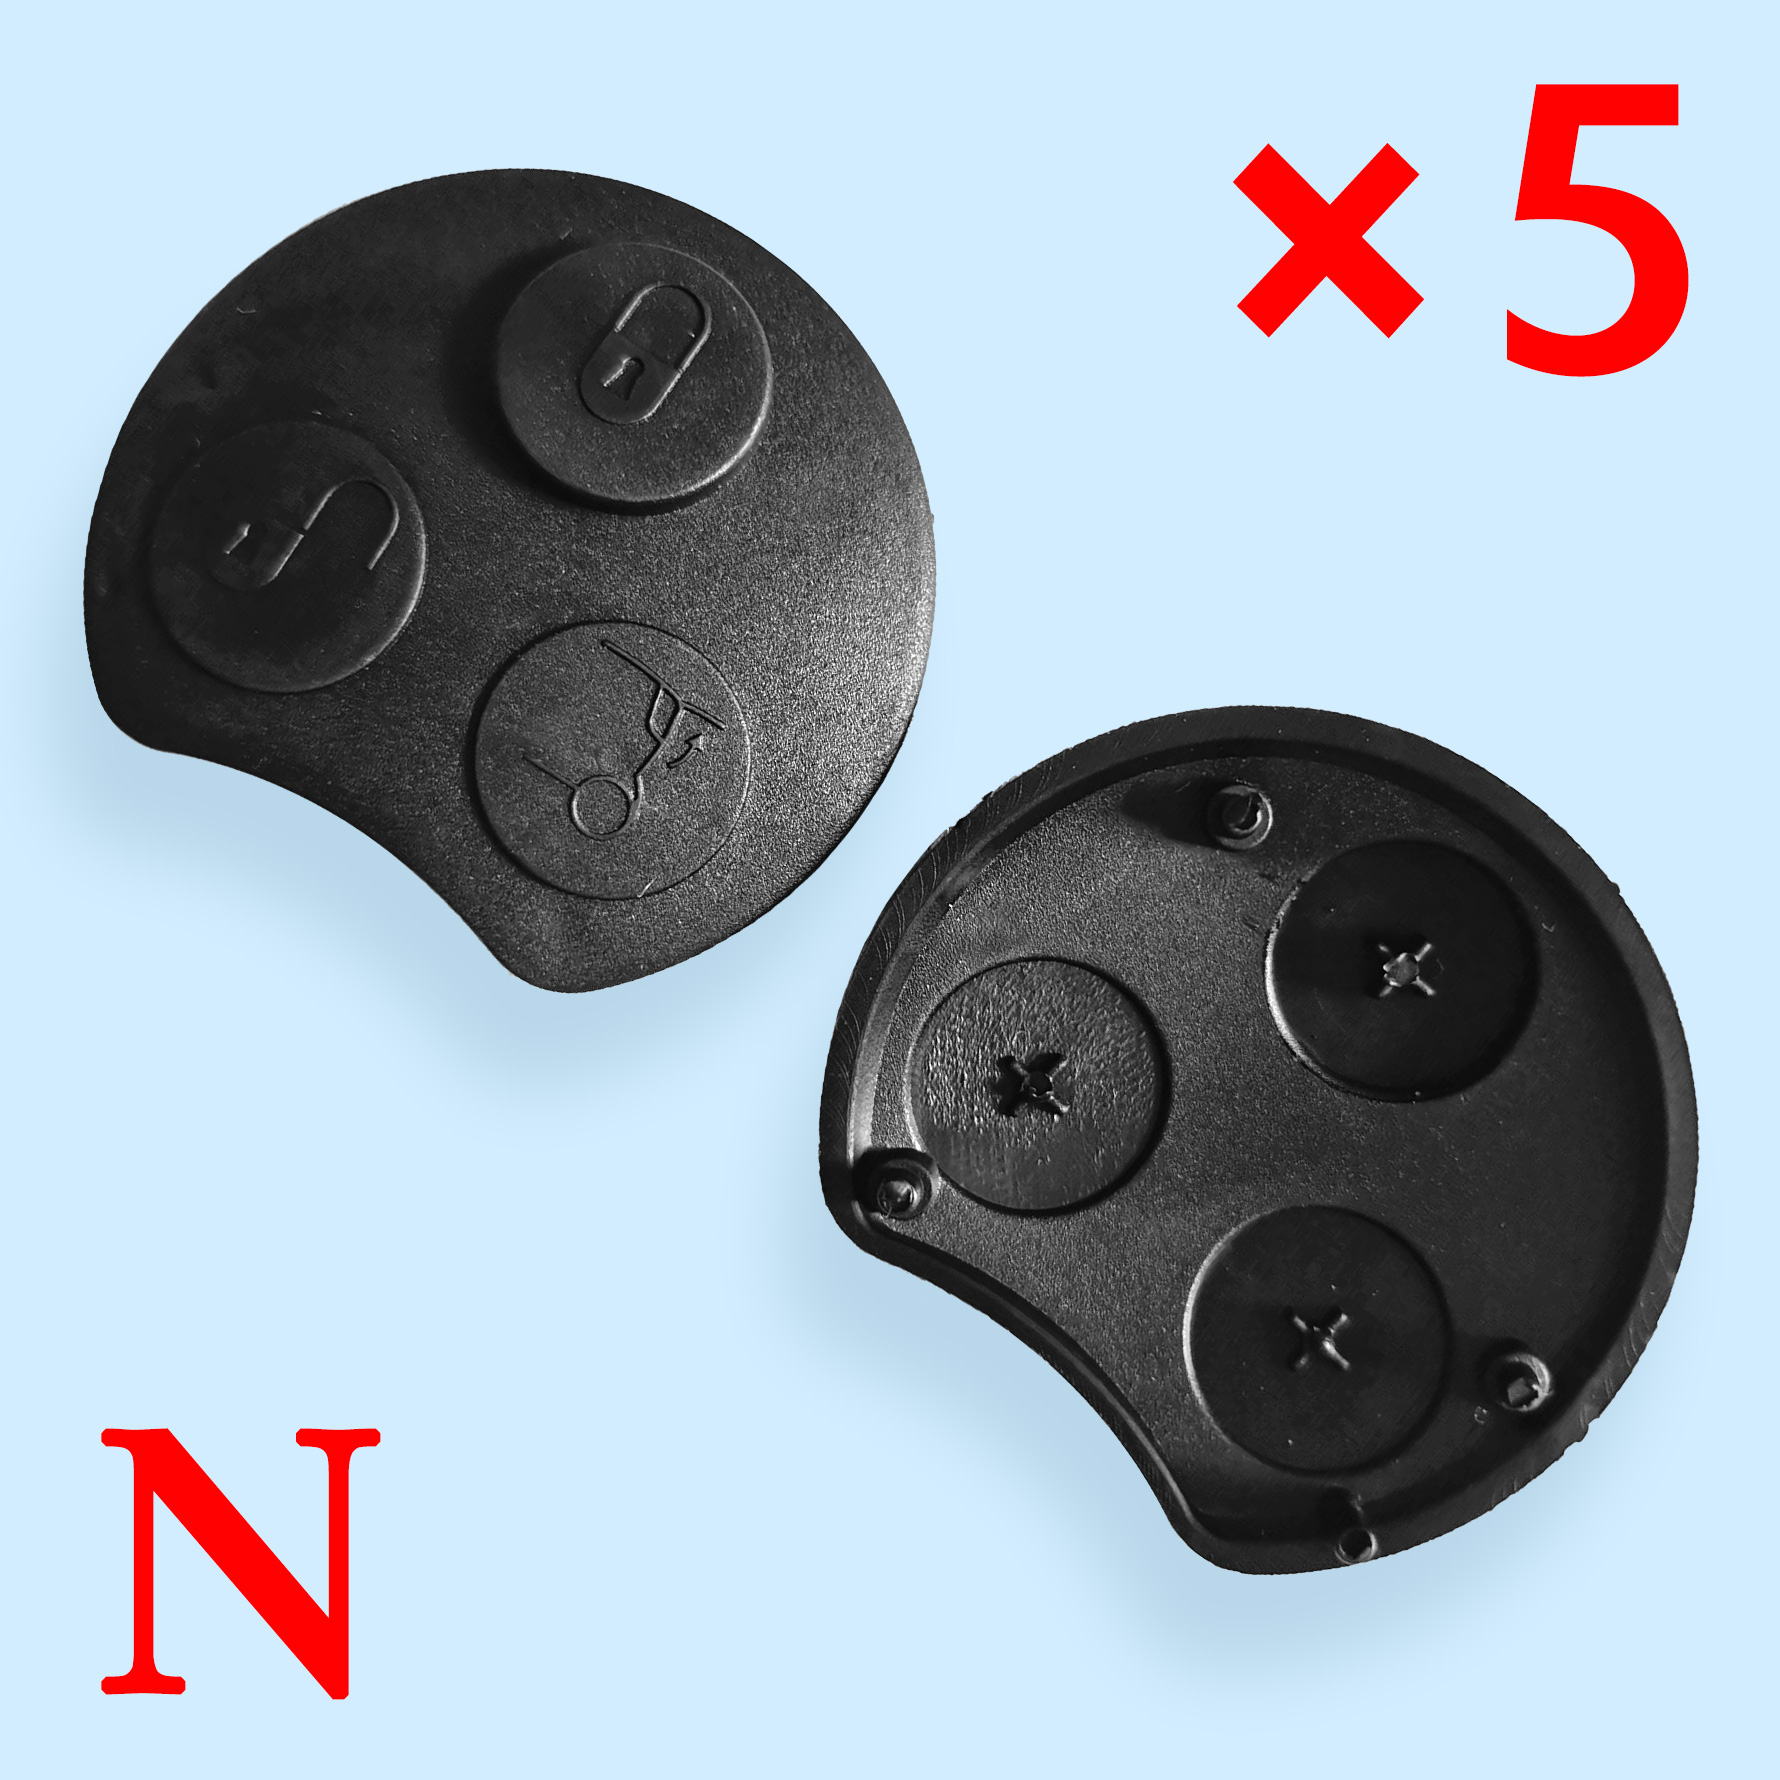 3 Buttons Key Shell Rubber Pad for Smart 10 pcs